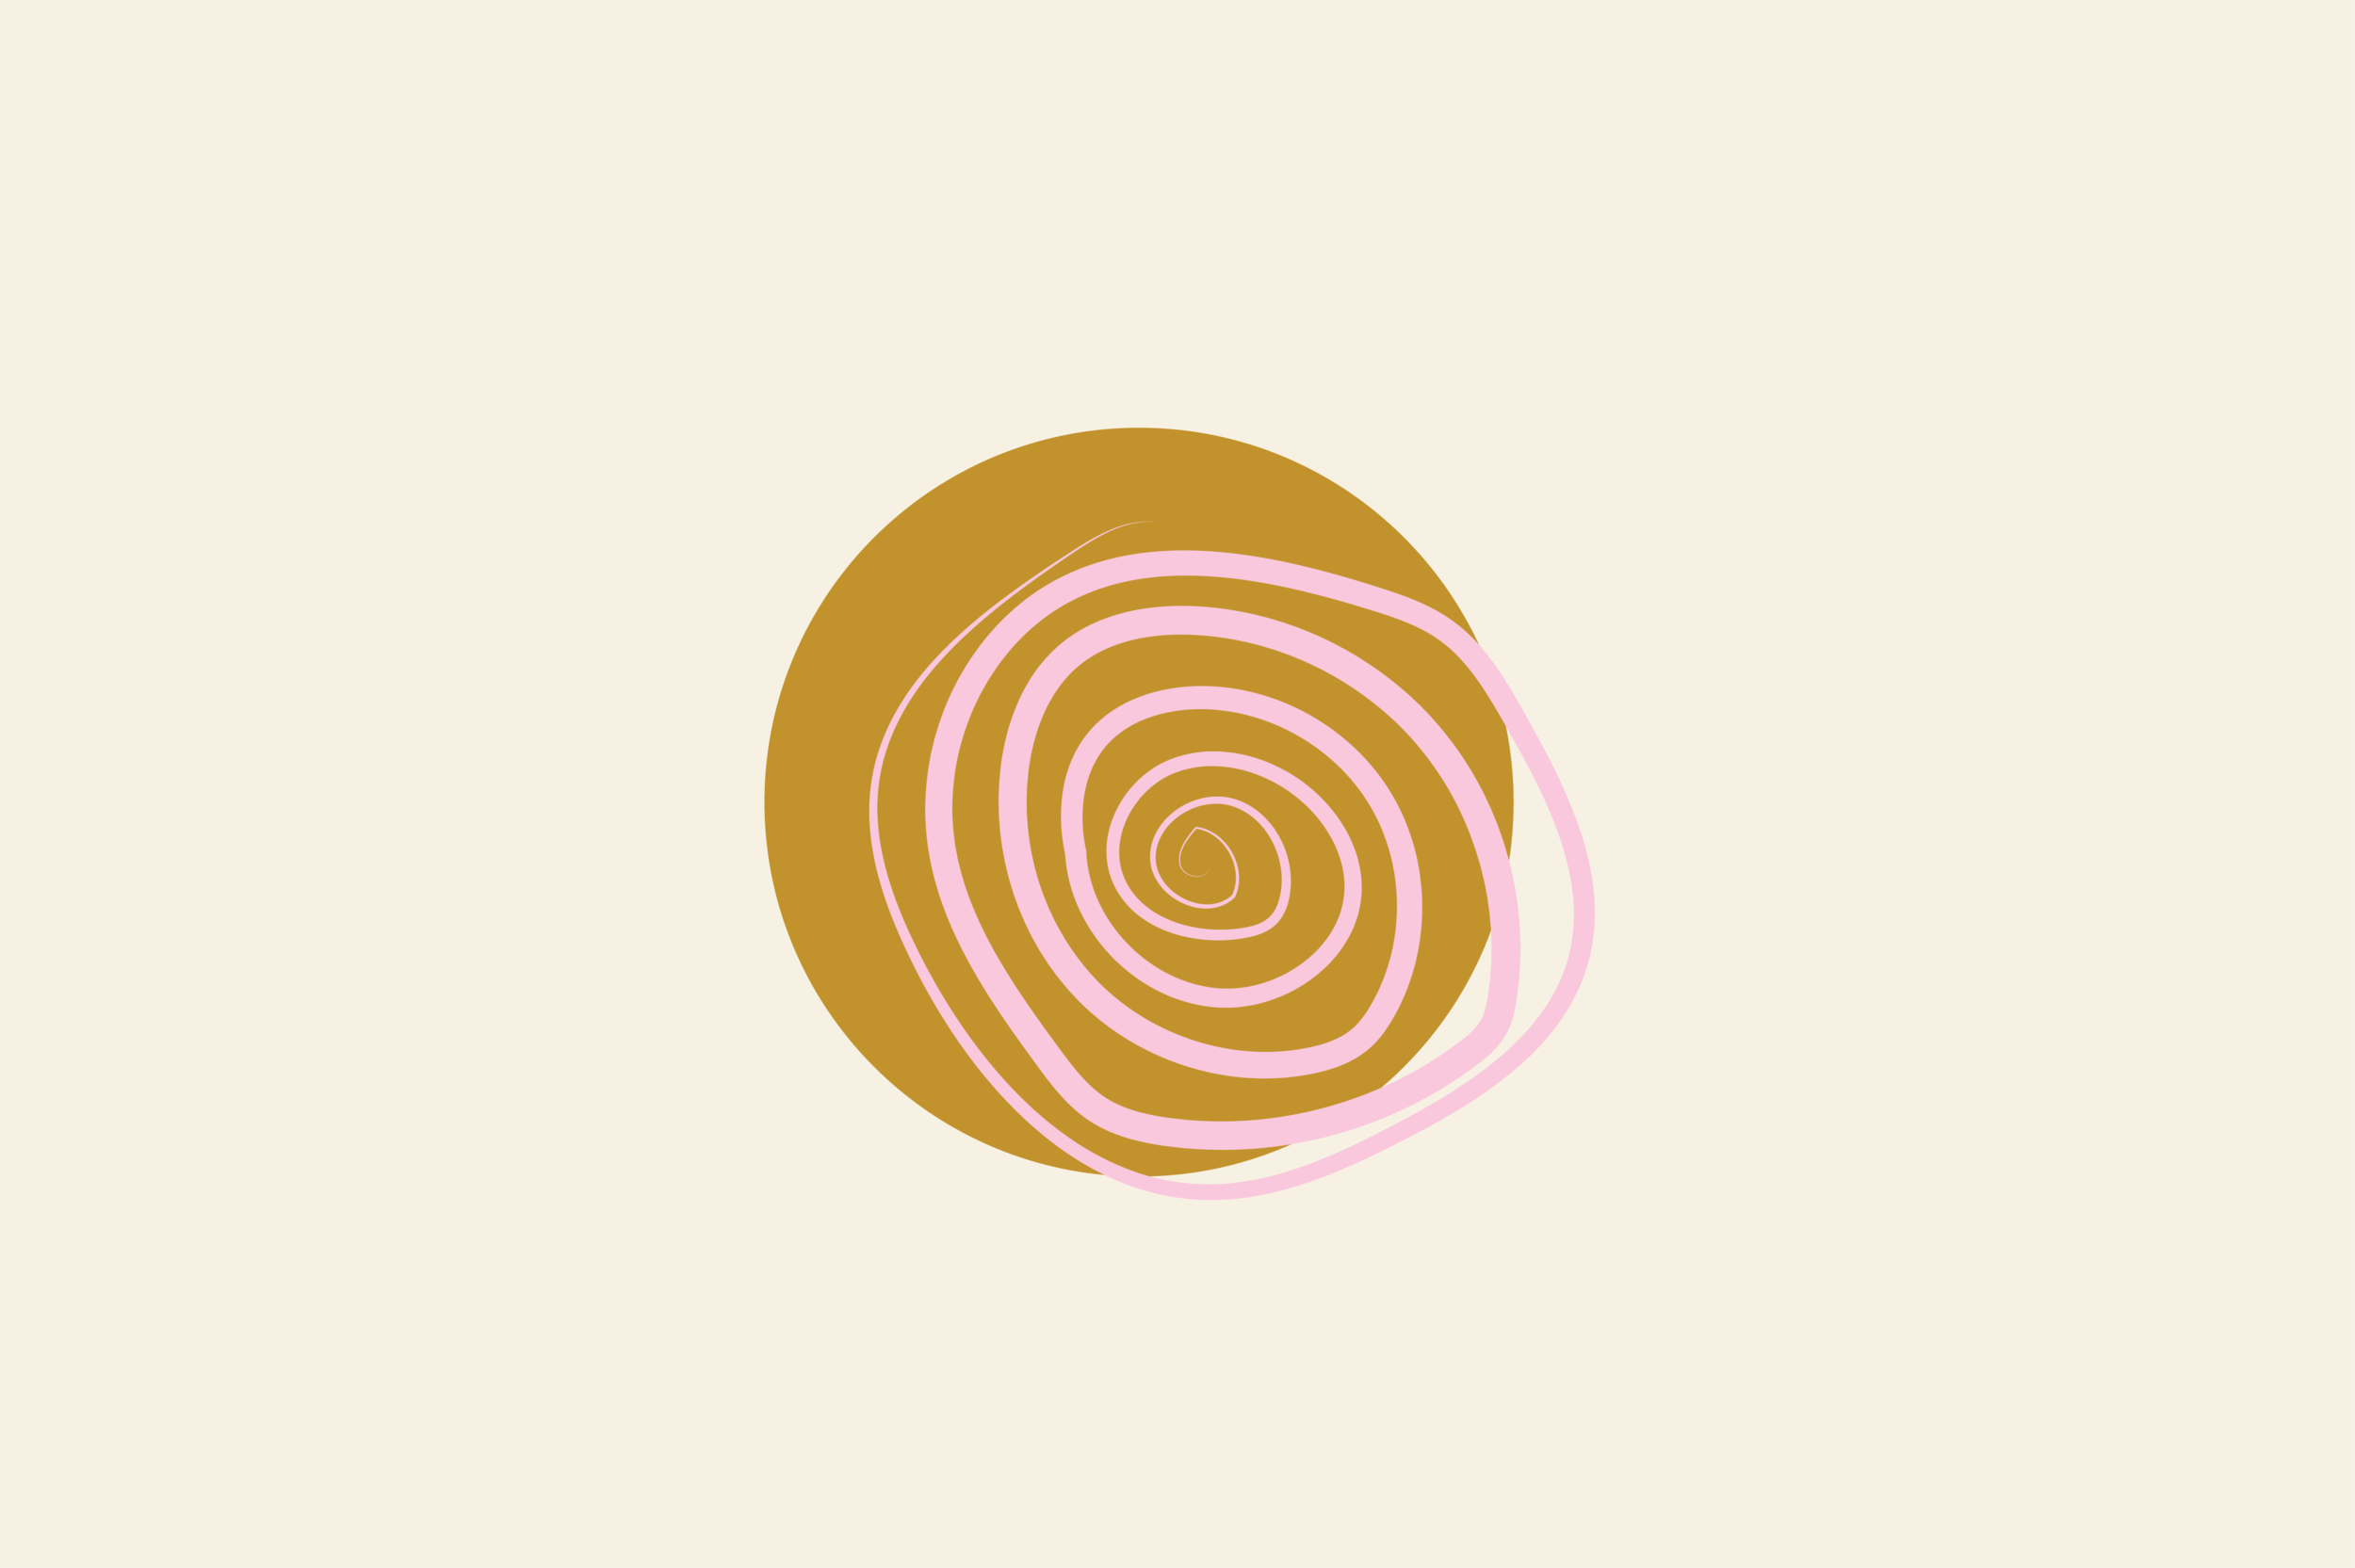 reflections_headspace-10.png